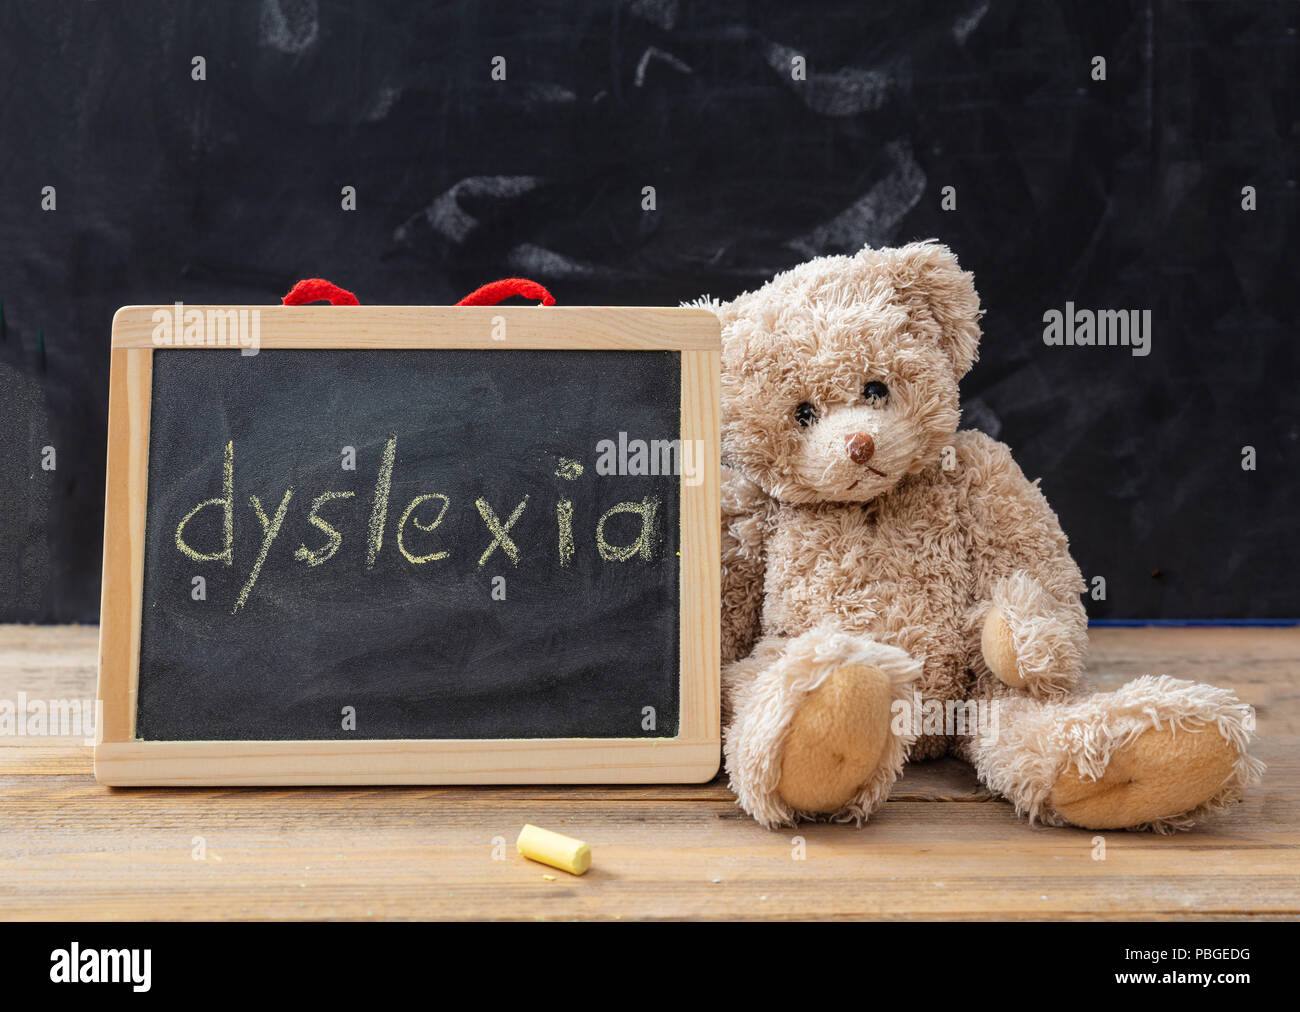 Dyslexia and school. Teddy bear and a blackboard. Dyslexia text drawing on the blackboard - Stock Image